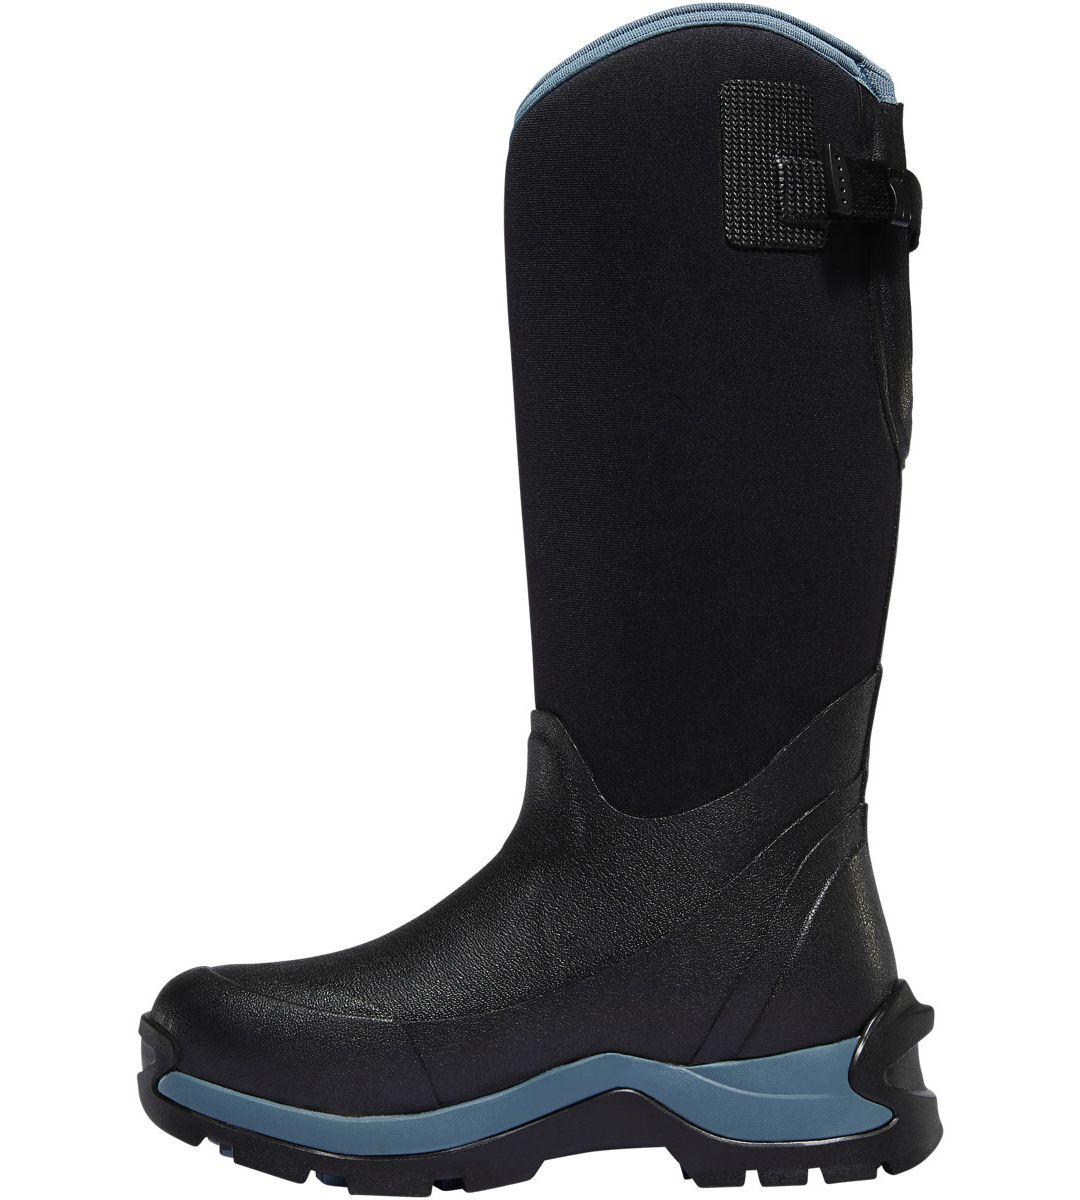 9be287ddc86 LaCrosse Women's Alpha Thermal 14'' Insulated Waterproof Work Boots